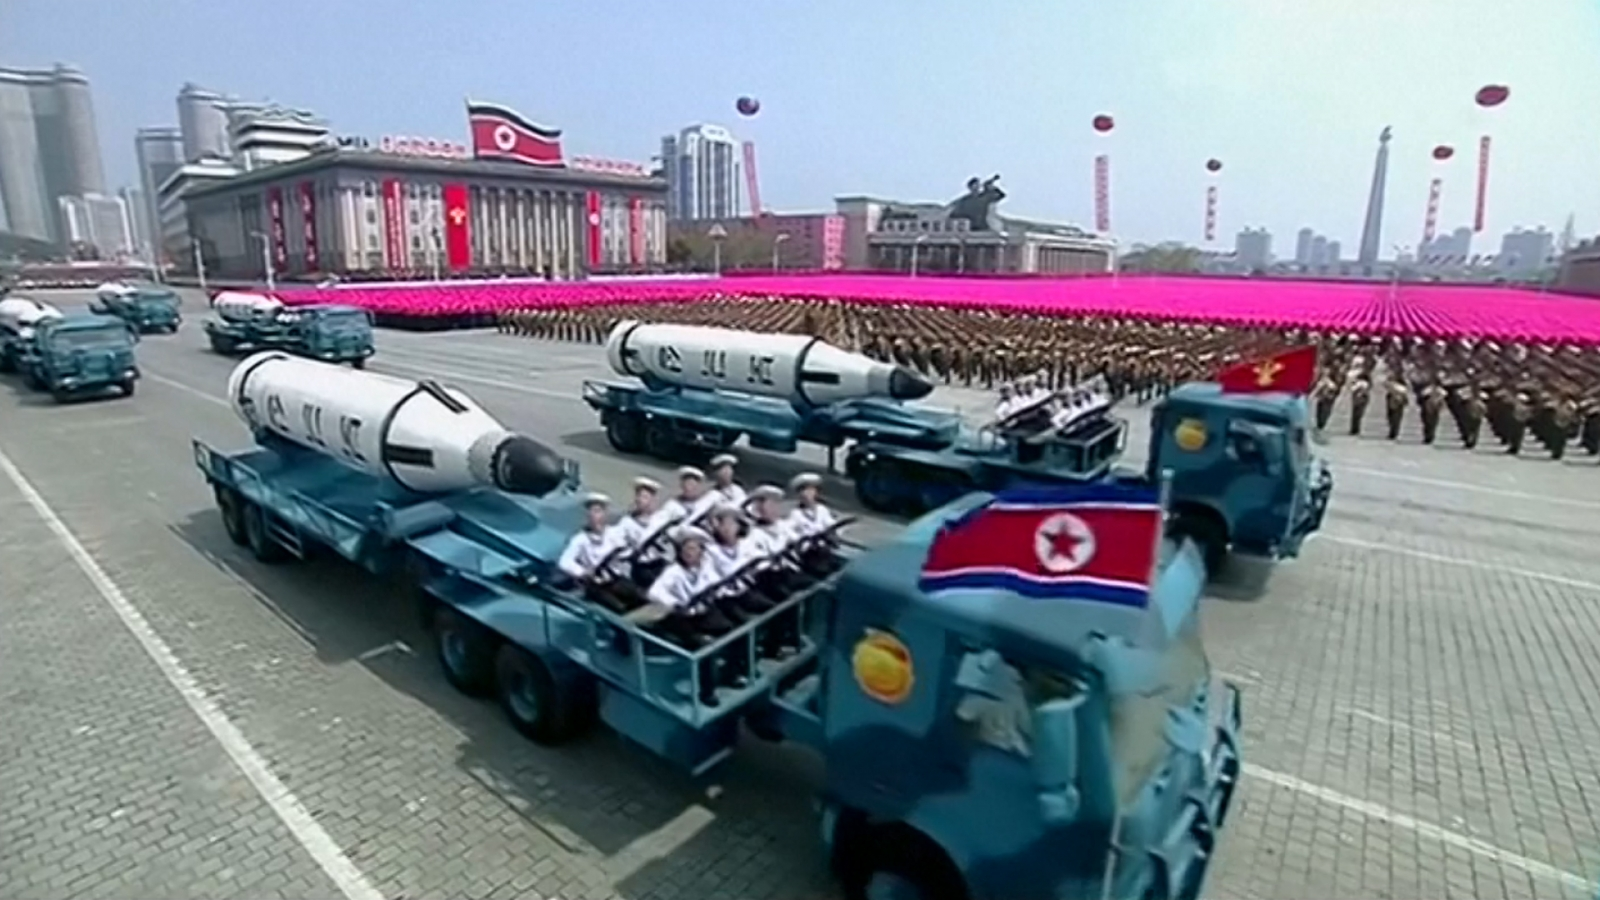 North Korea shows off new ICBM during founder's day parade